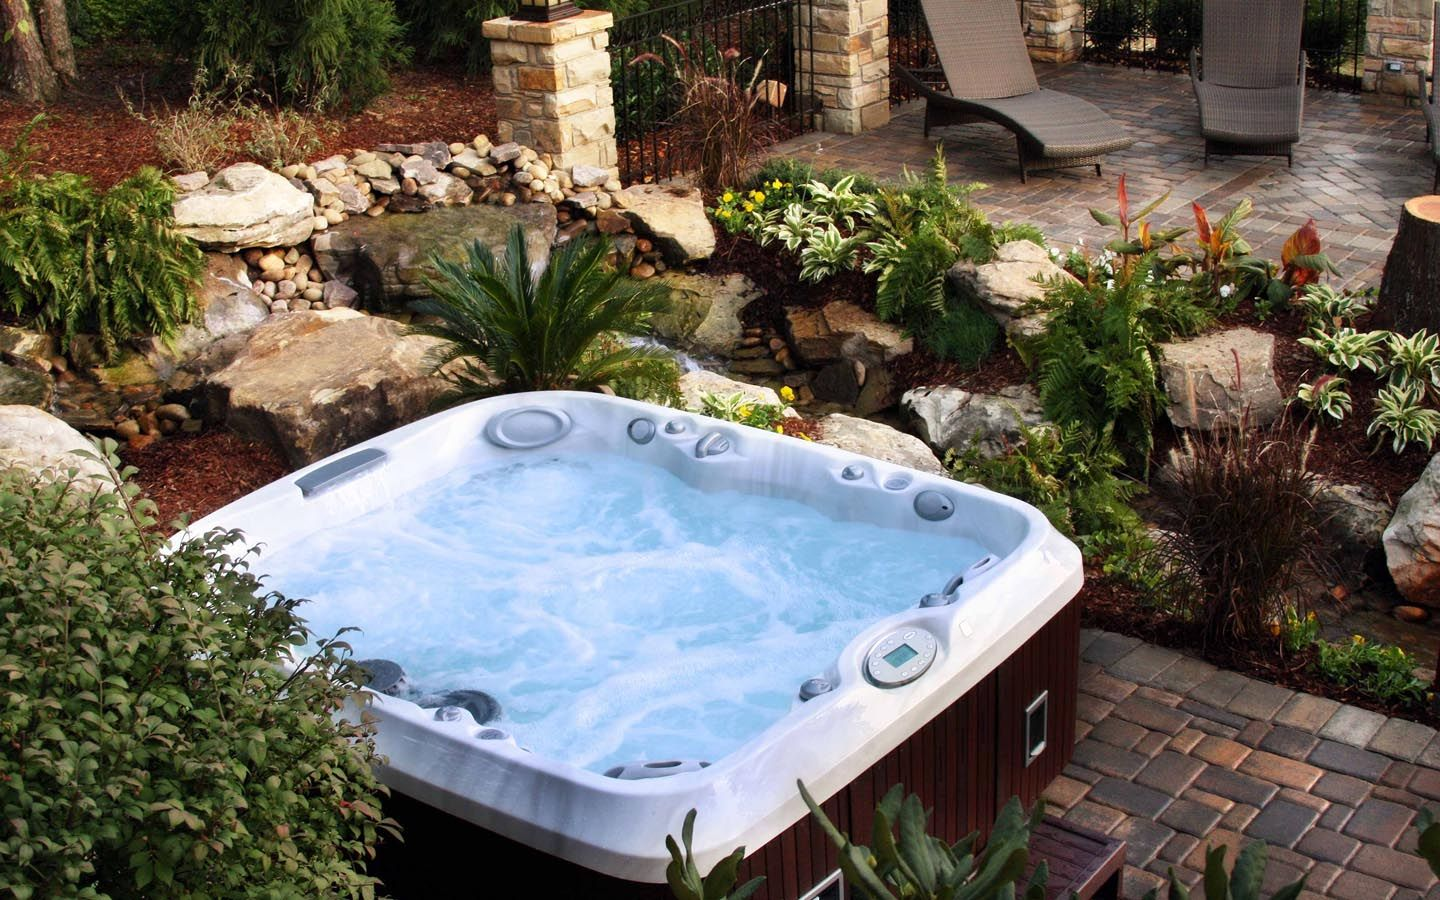 25 Stunning Garden Hot Tub Designs | Hot tubs, Tubs and Jacuzzi